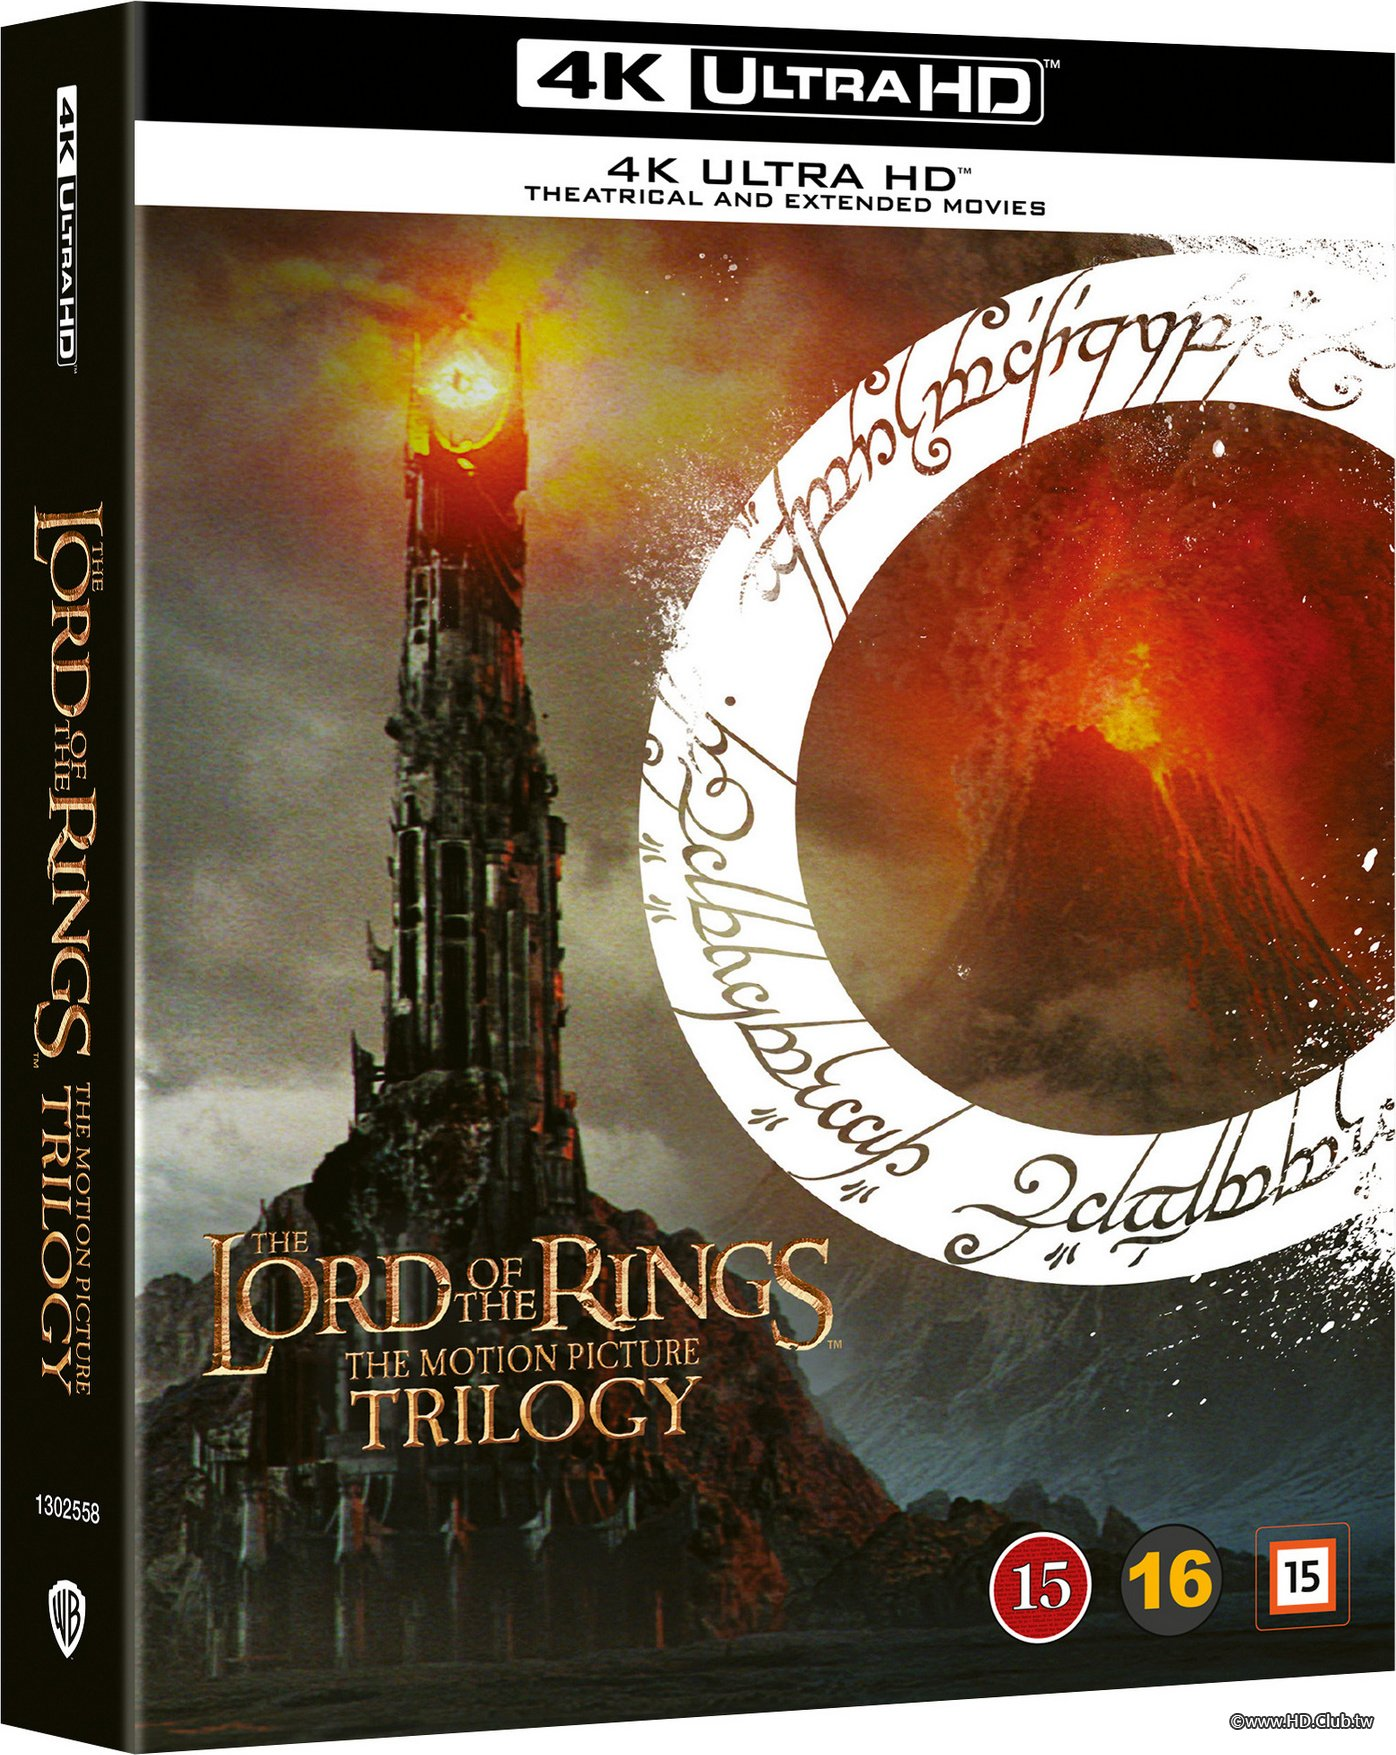 The Lord of the Rings Trilogy.jpg